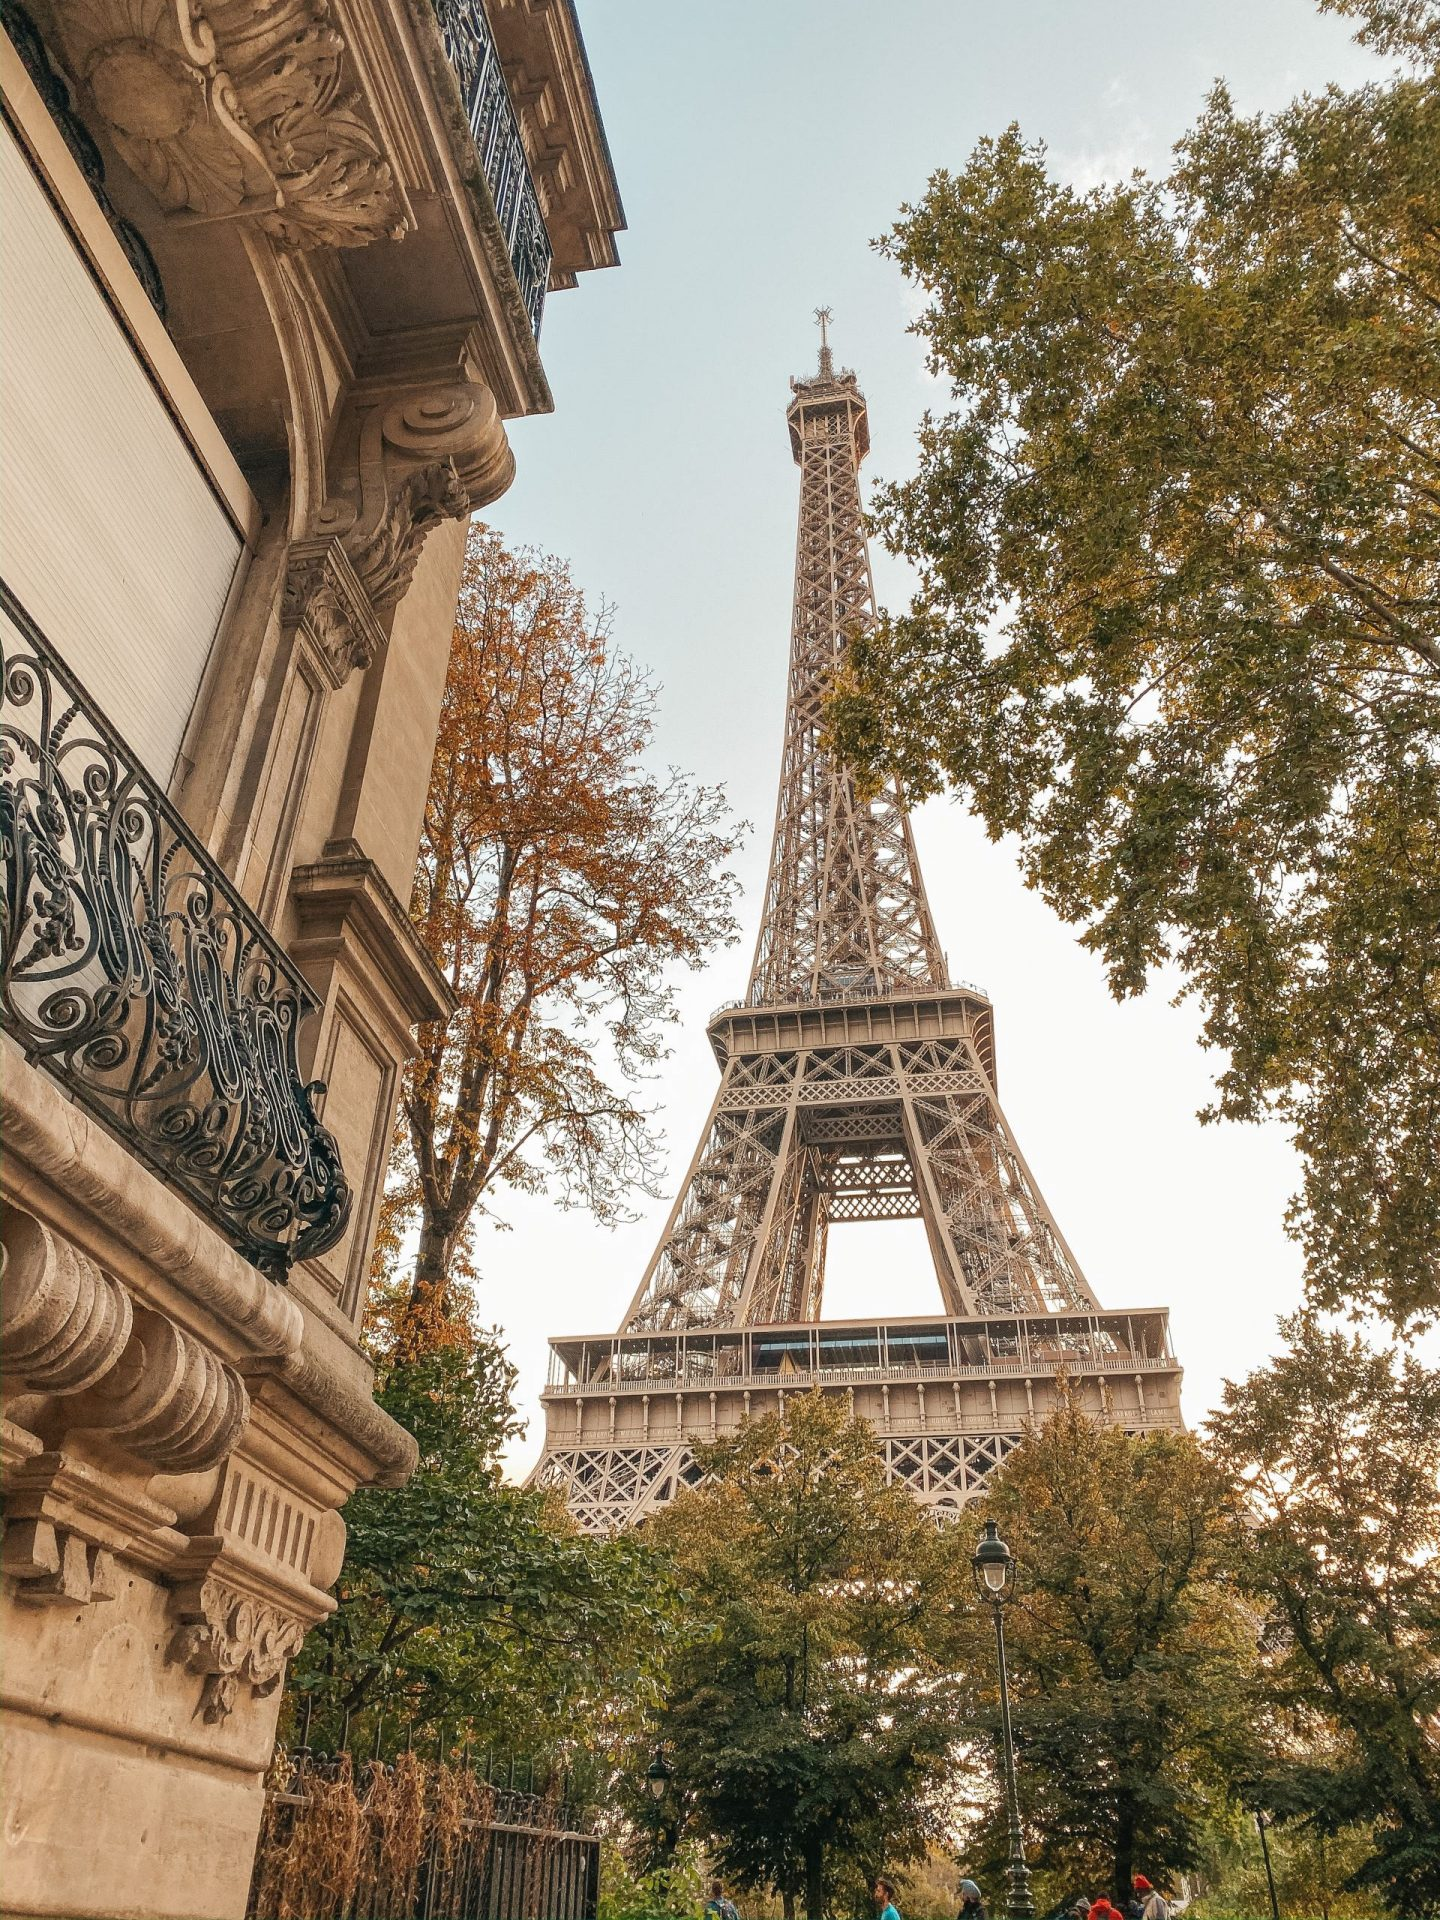 Paris. A short travel guide.